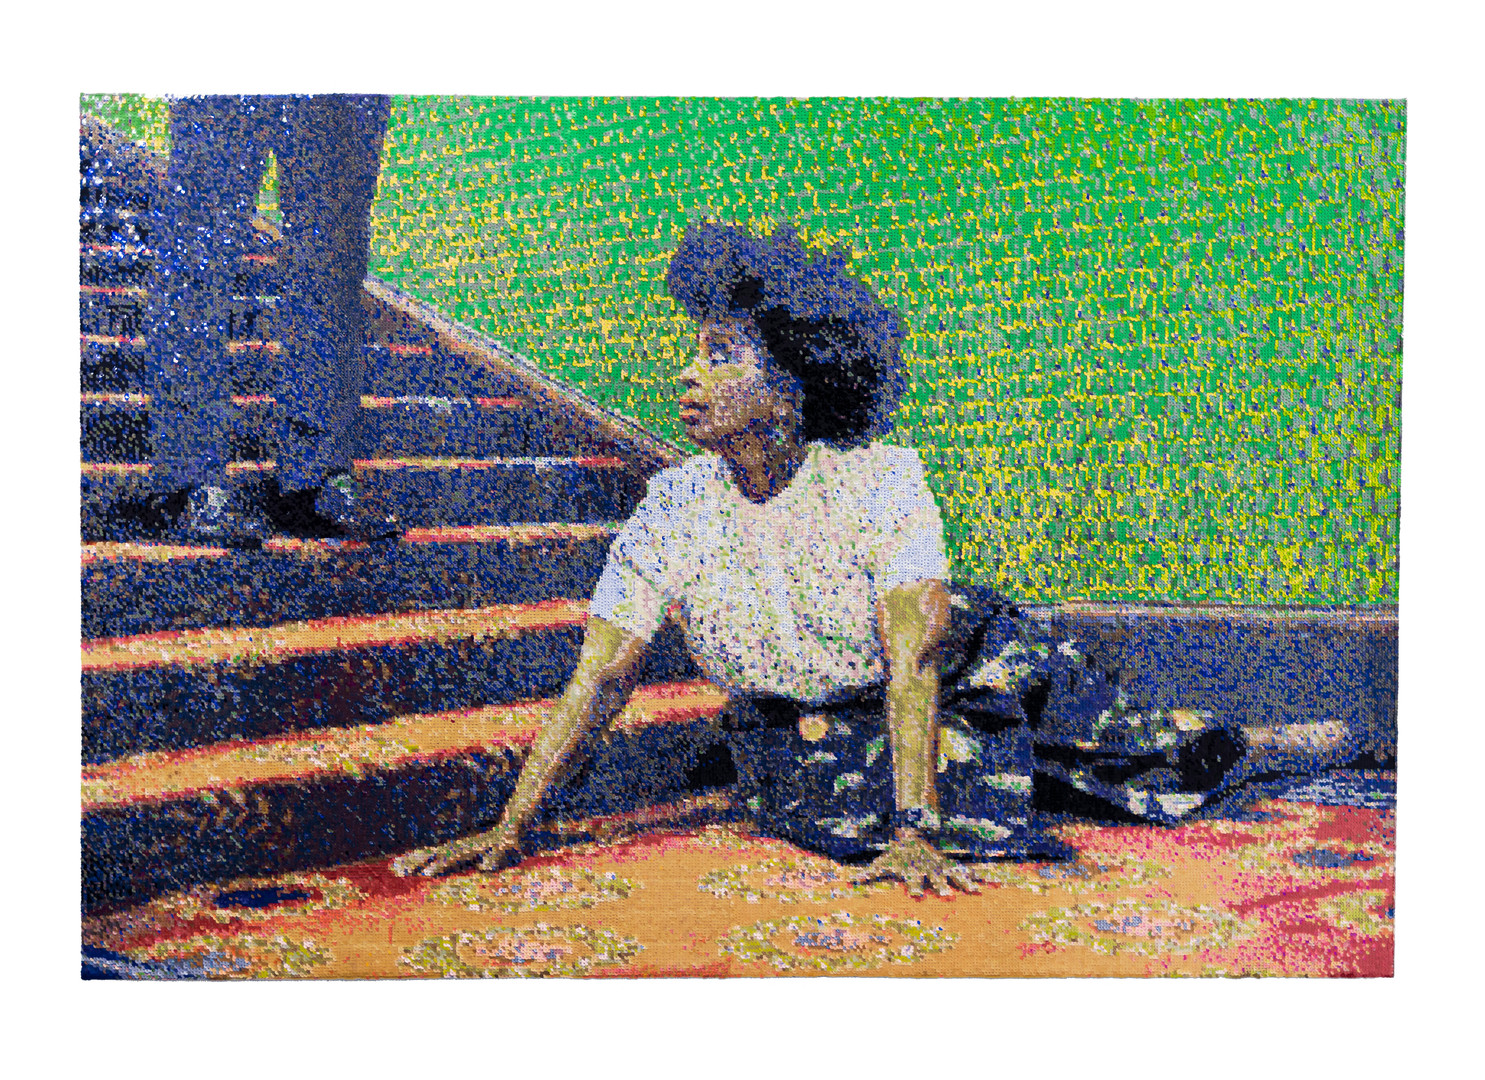 Frances Goodman | The Staircase | 2020 | Hand-Stitched Sequins on Canvas | 114 x 170 cm